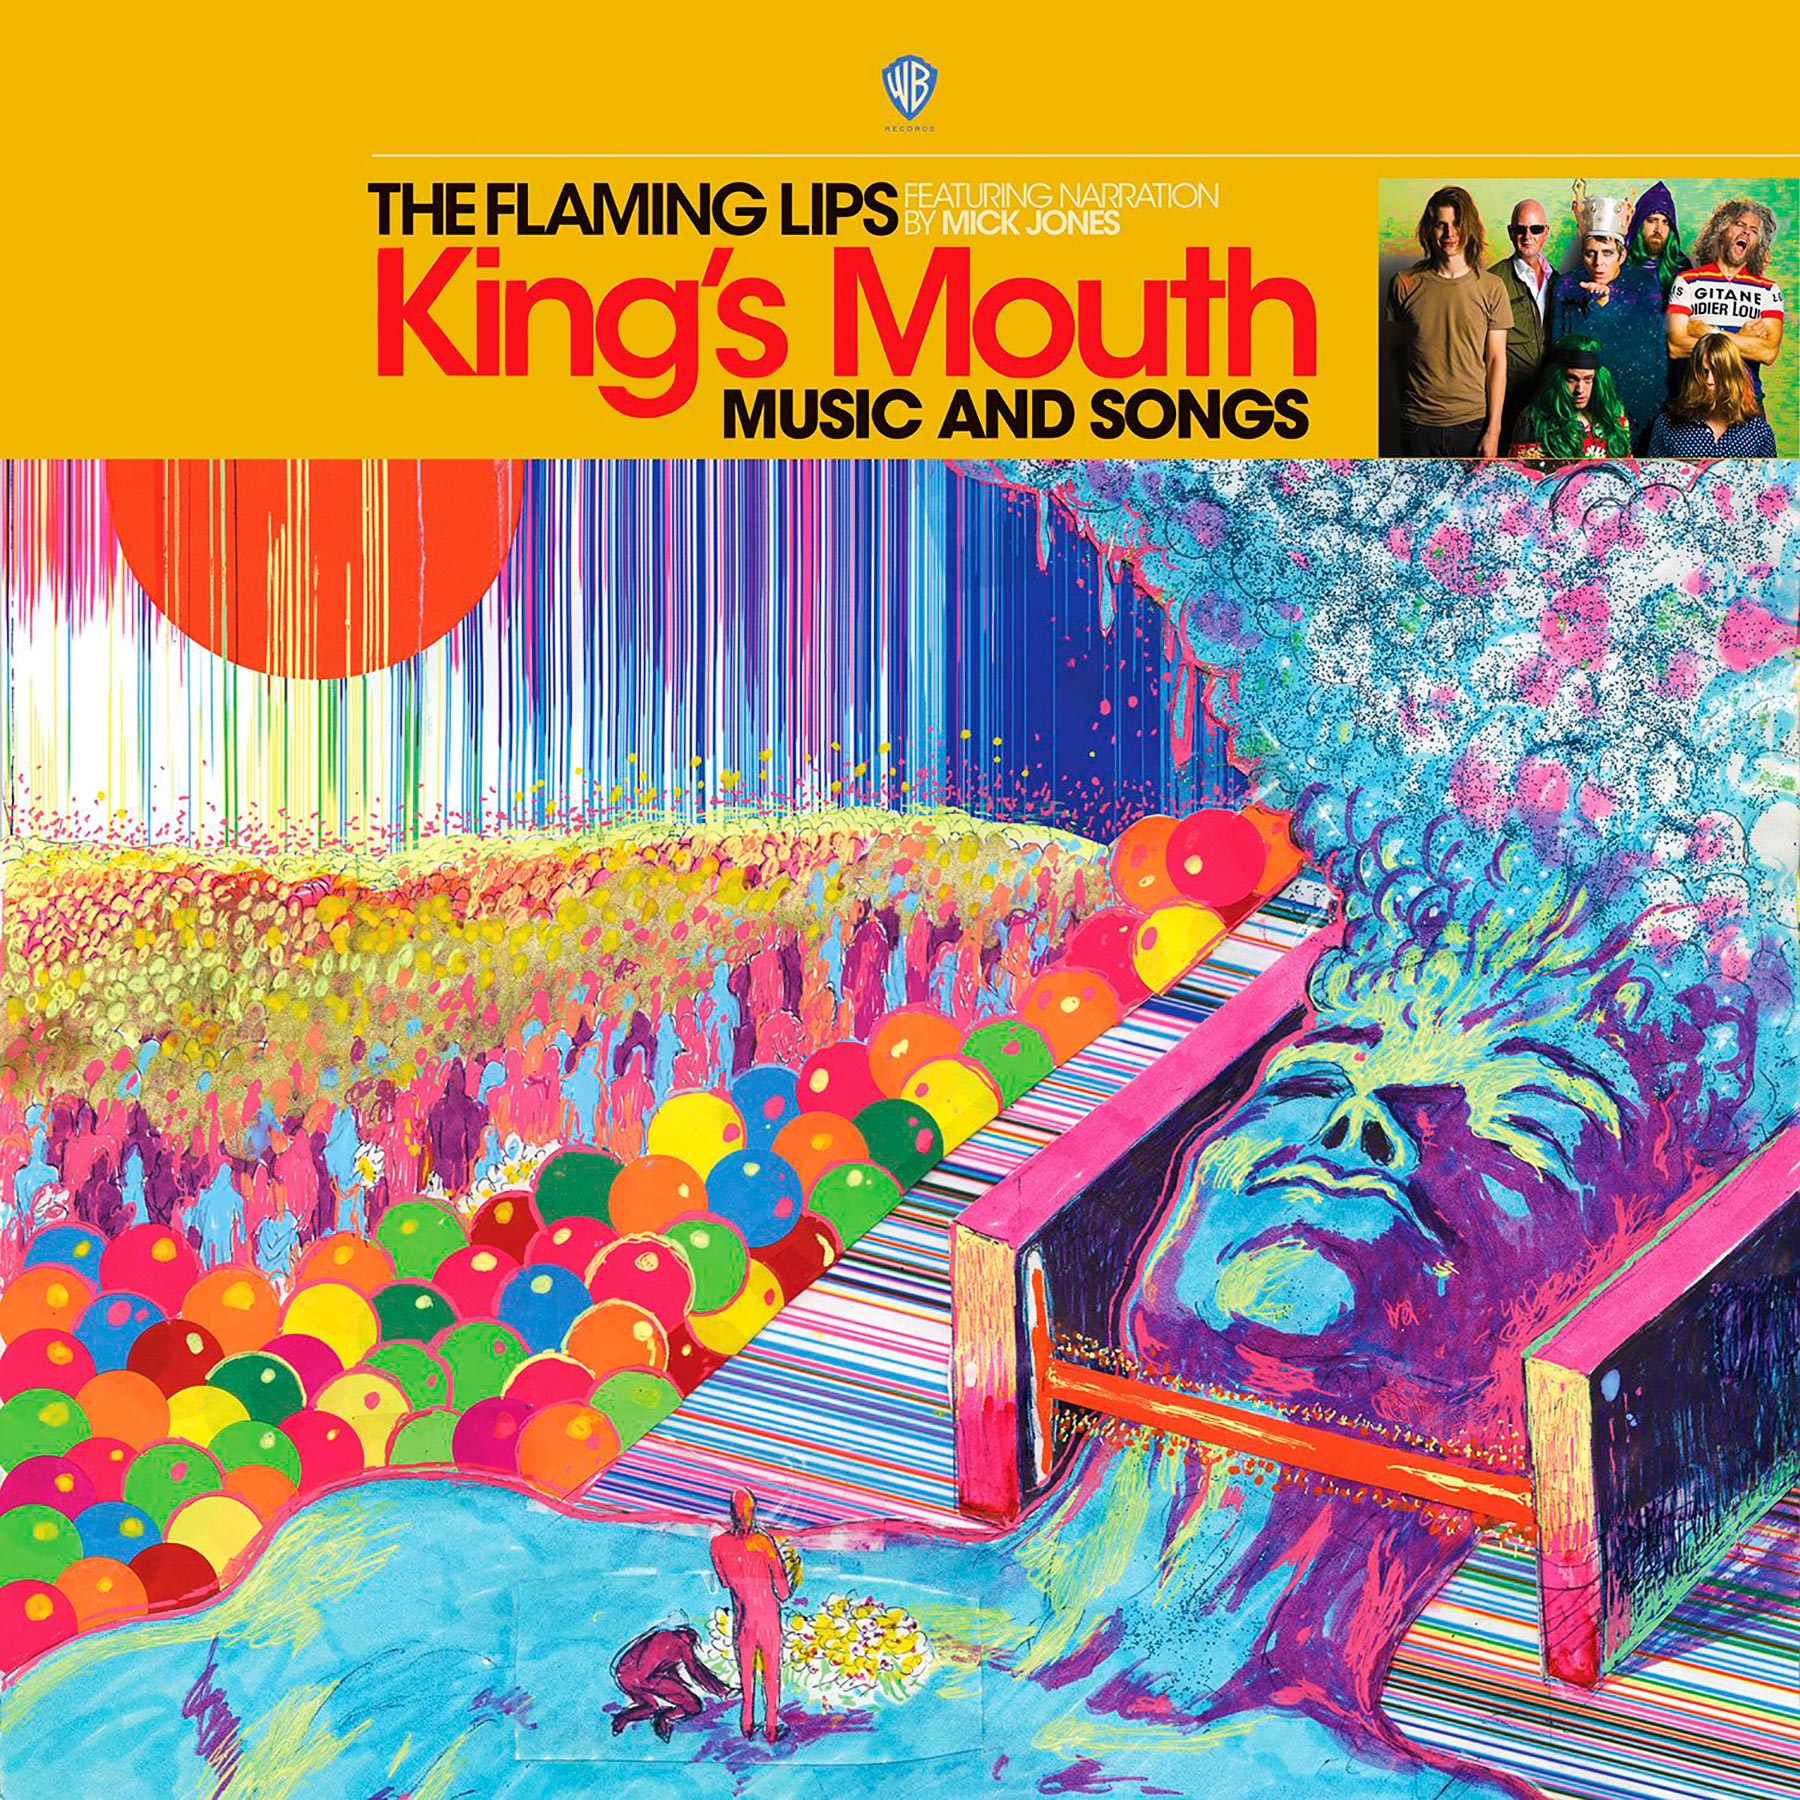 King's Mouth by Flaming Lips